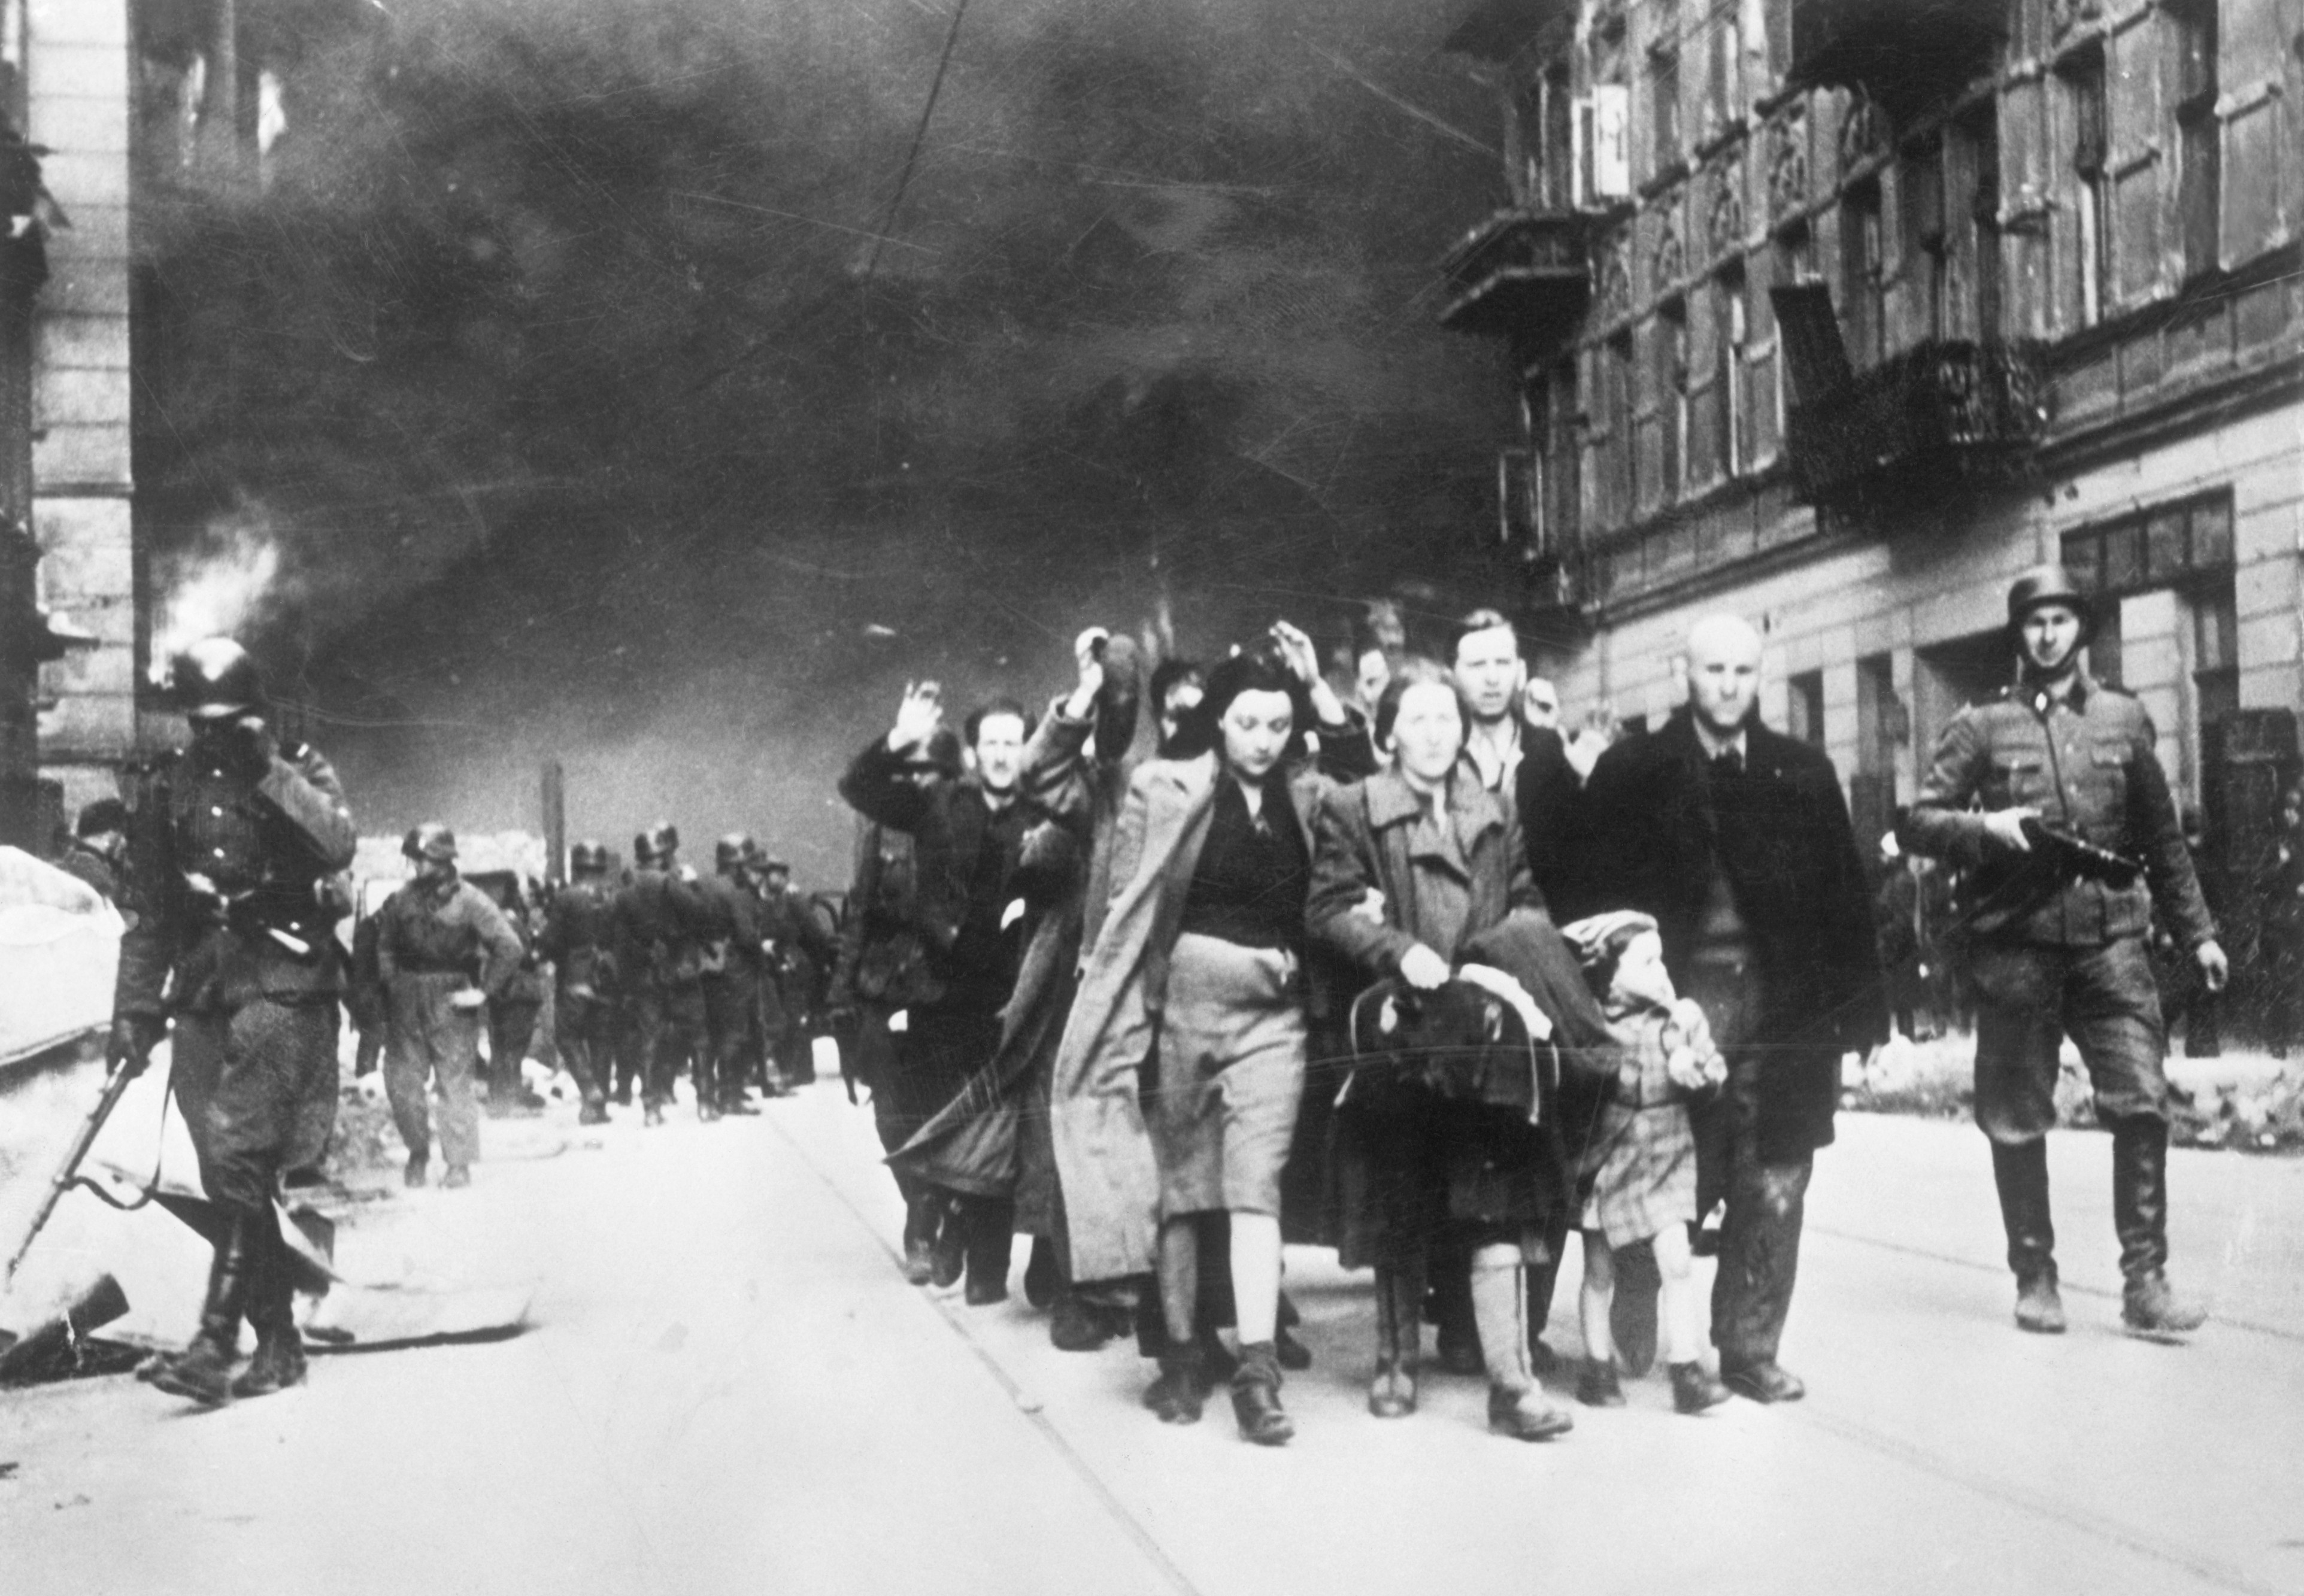 The Warsaw Ghetto, Poland, where hundreds of thousands of Jews were forced to live before they were sent to concentration camps as part of Adolf Hitler's 'final solution'. (Bettmann/Getty Images)